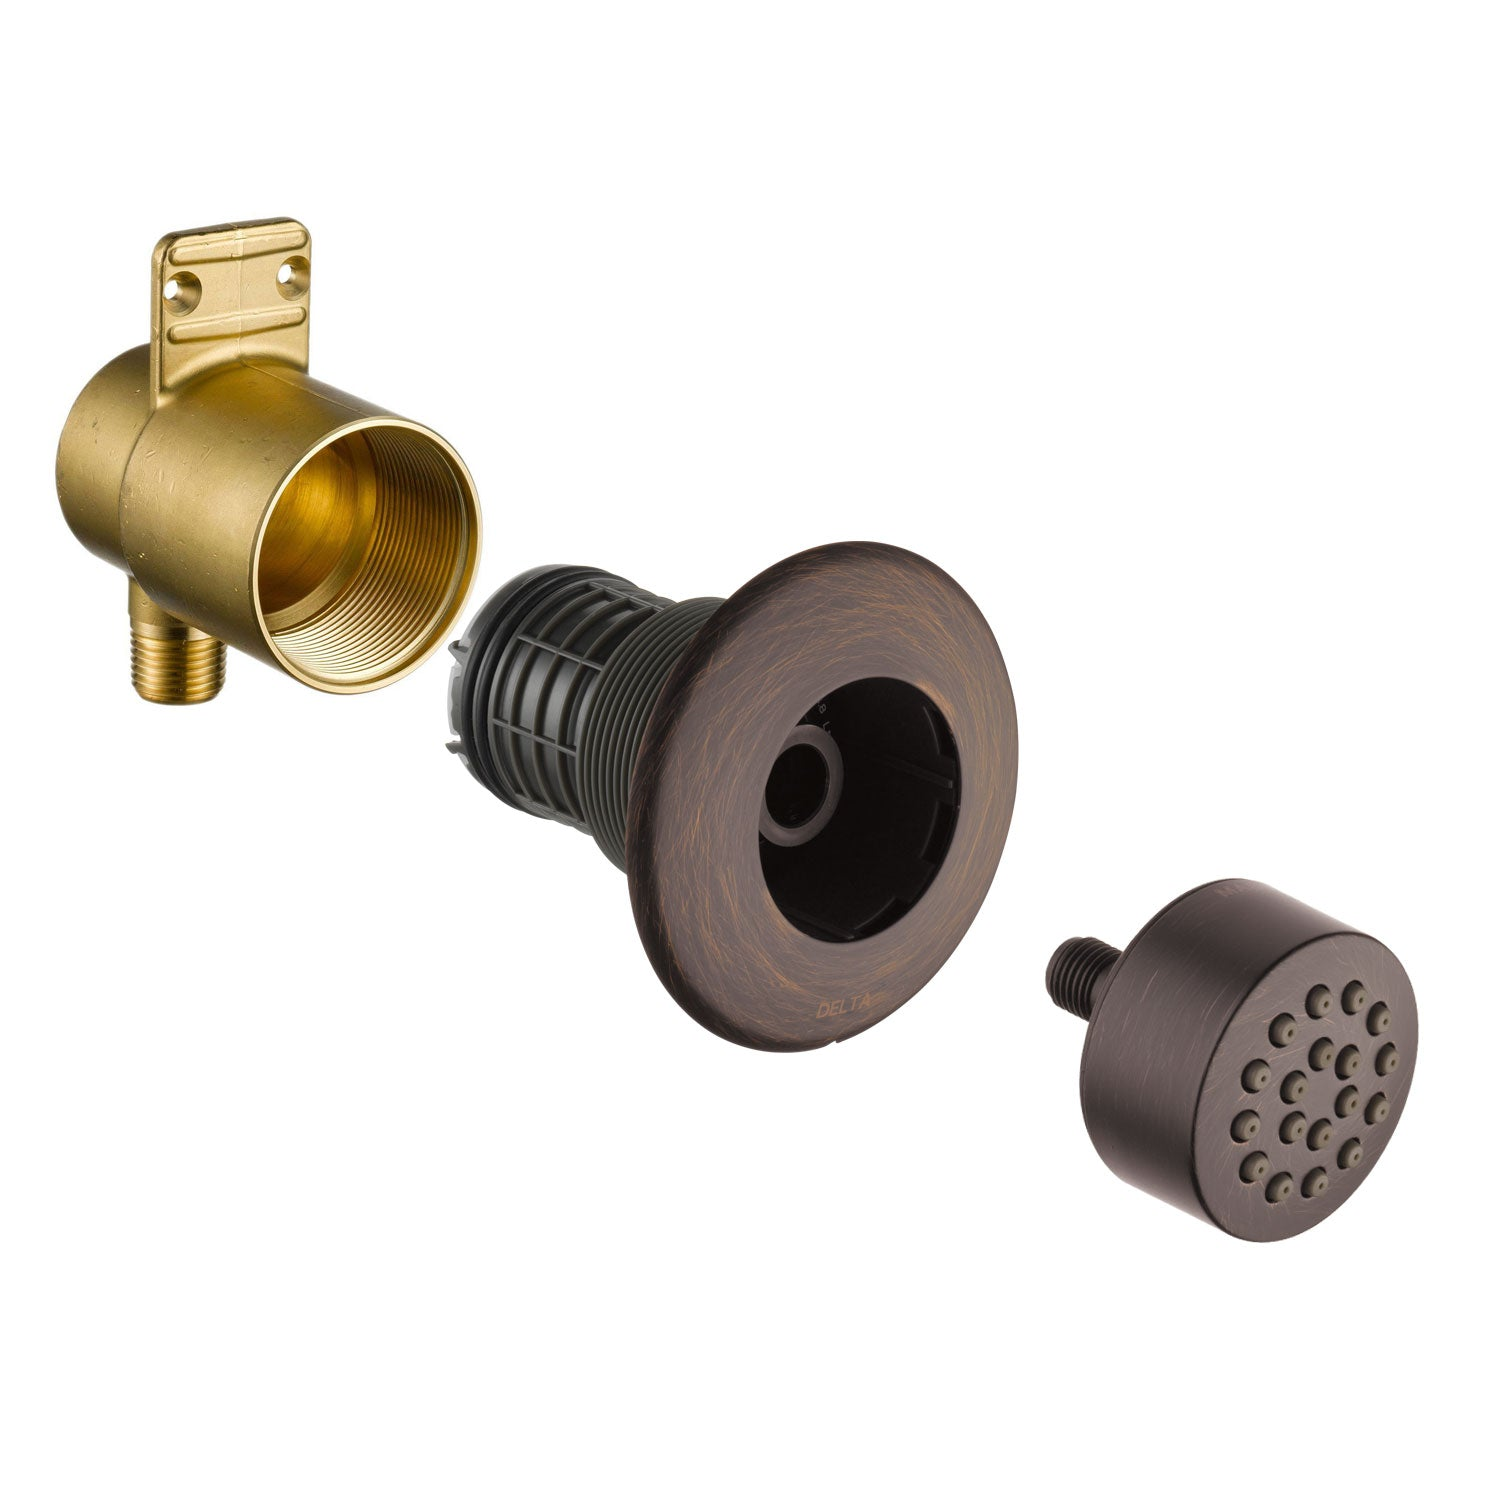 Delta Venetian Bronze Finish HydraChoice Touch Clean Round Shower System Body Spray COMPLETE Includes Valve, Trim, and Spray D1374V